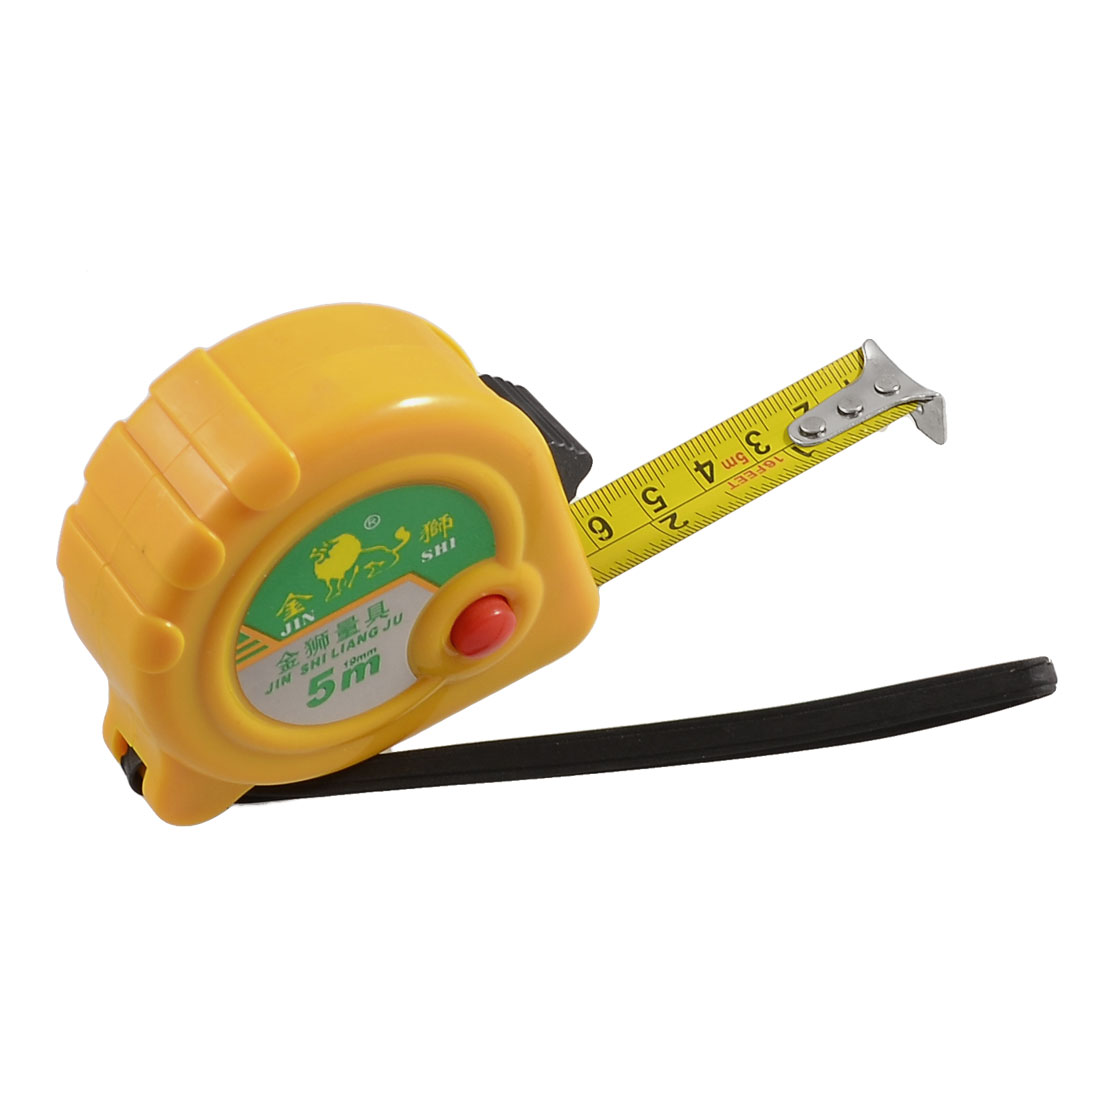 5 Meters 16 Ft Length Locking Measuring Tape Ruller w Hand Strap